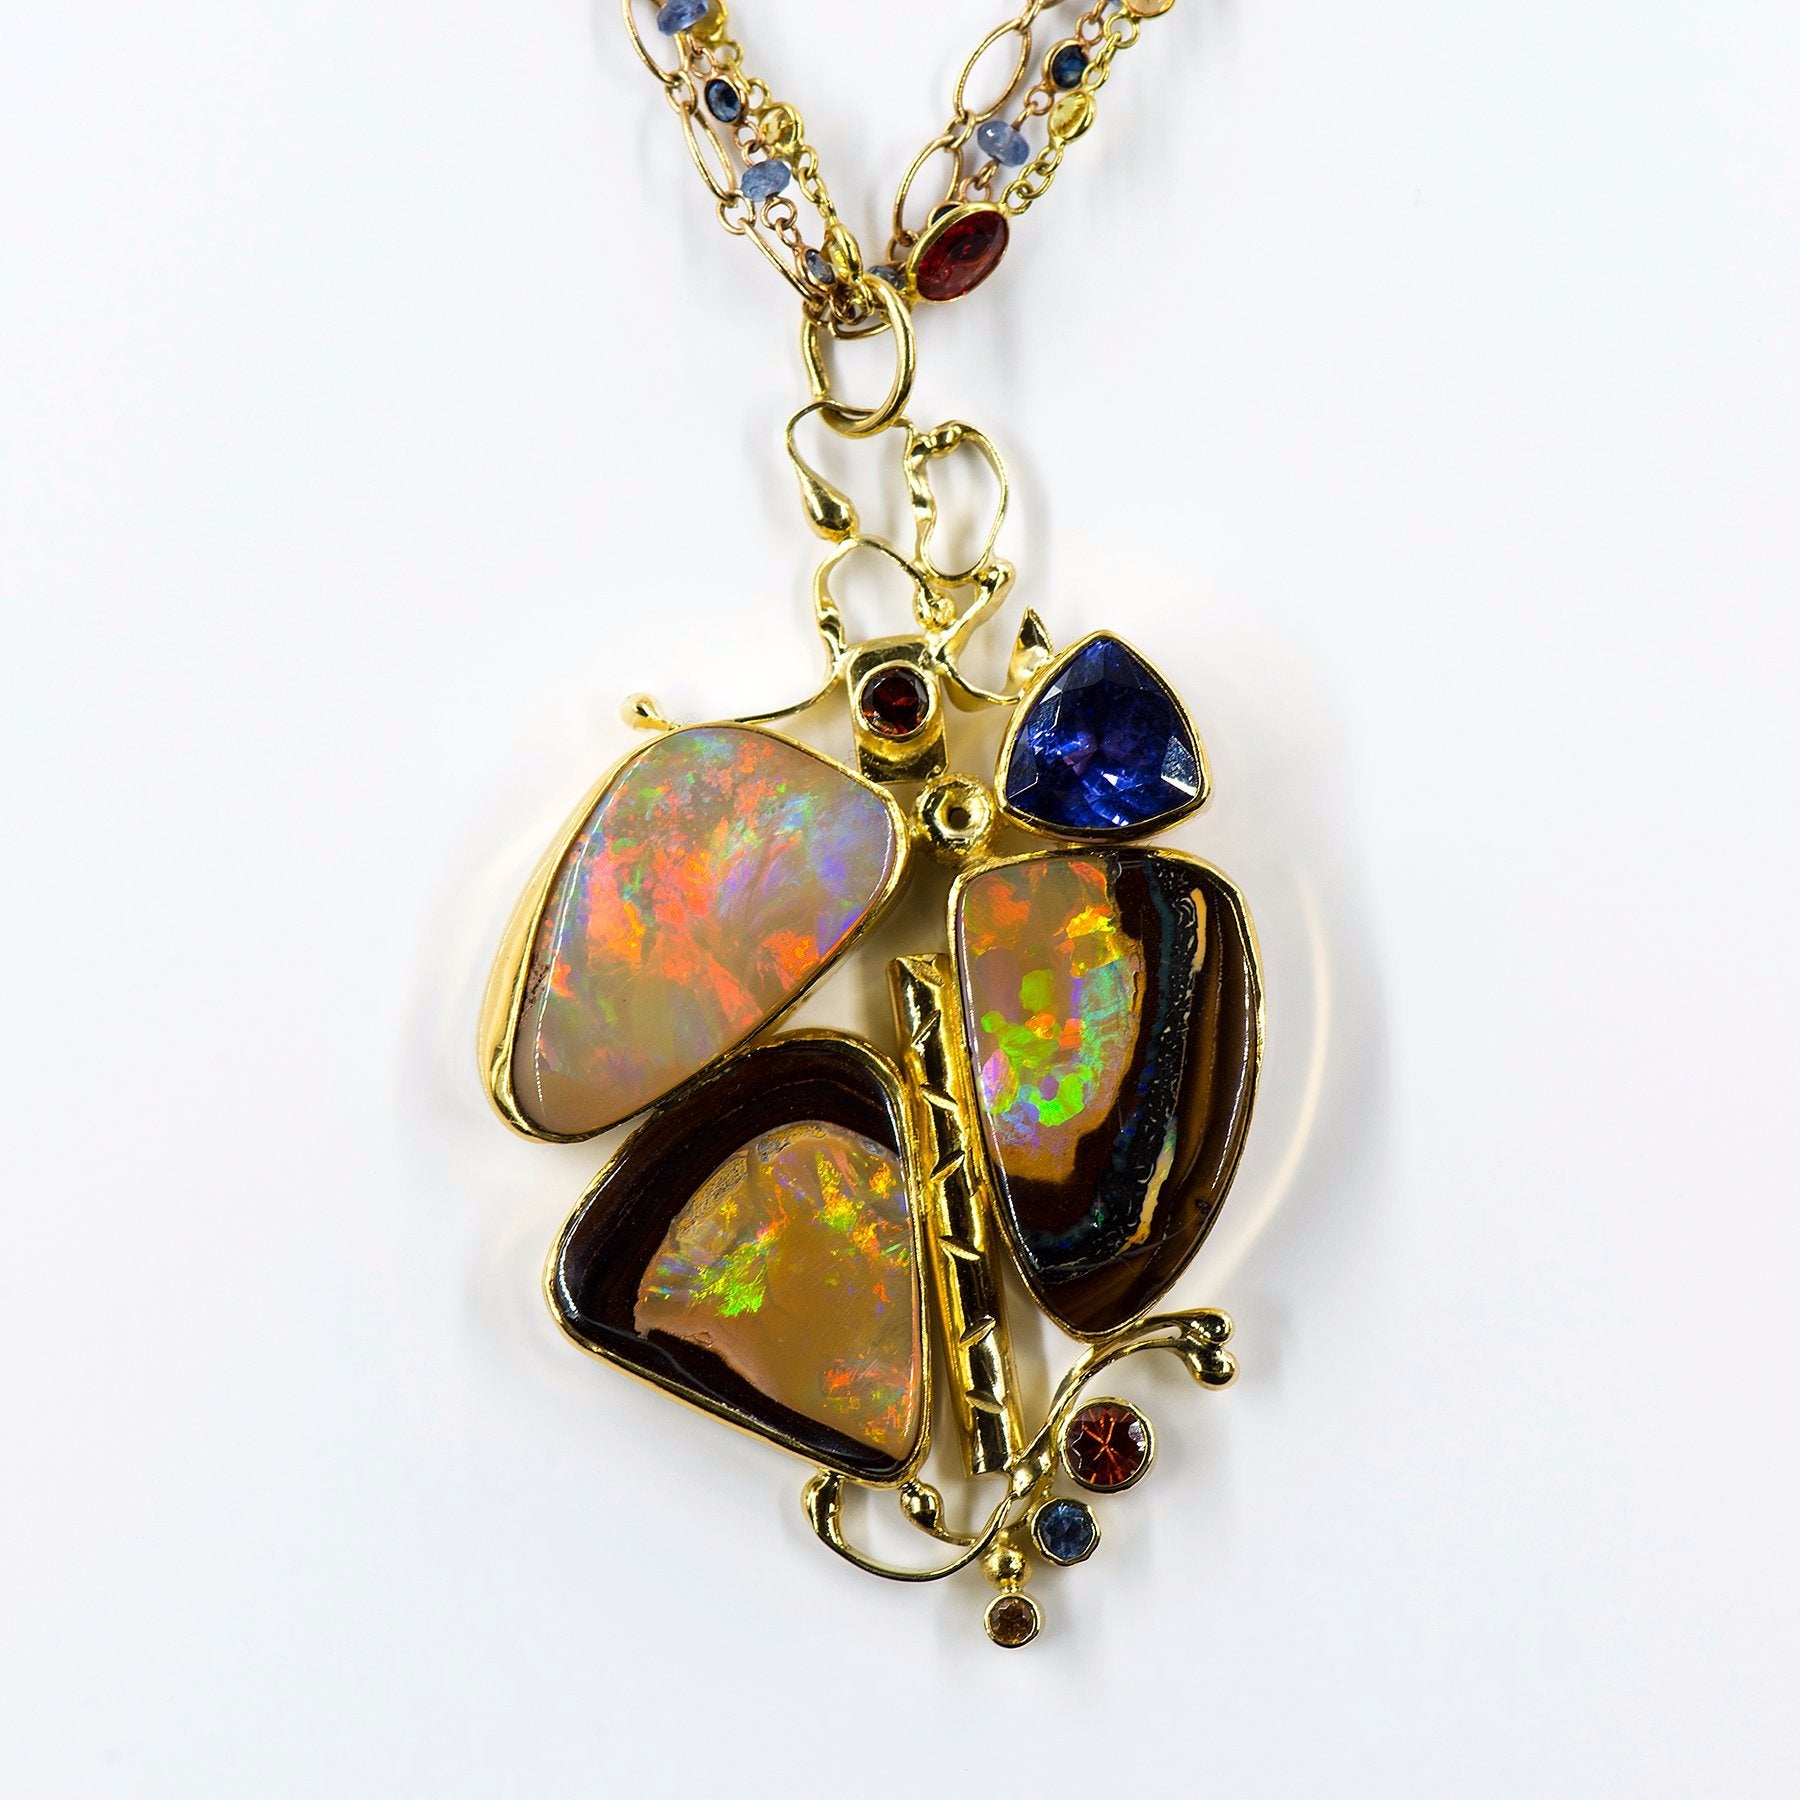 view boulder opal product biro the pendant desert jewellery category categories quick